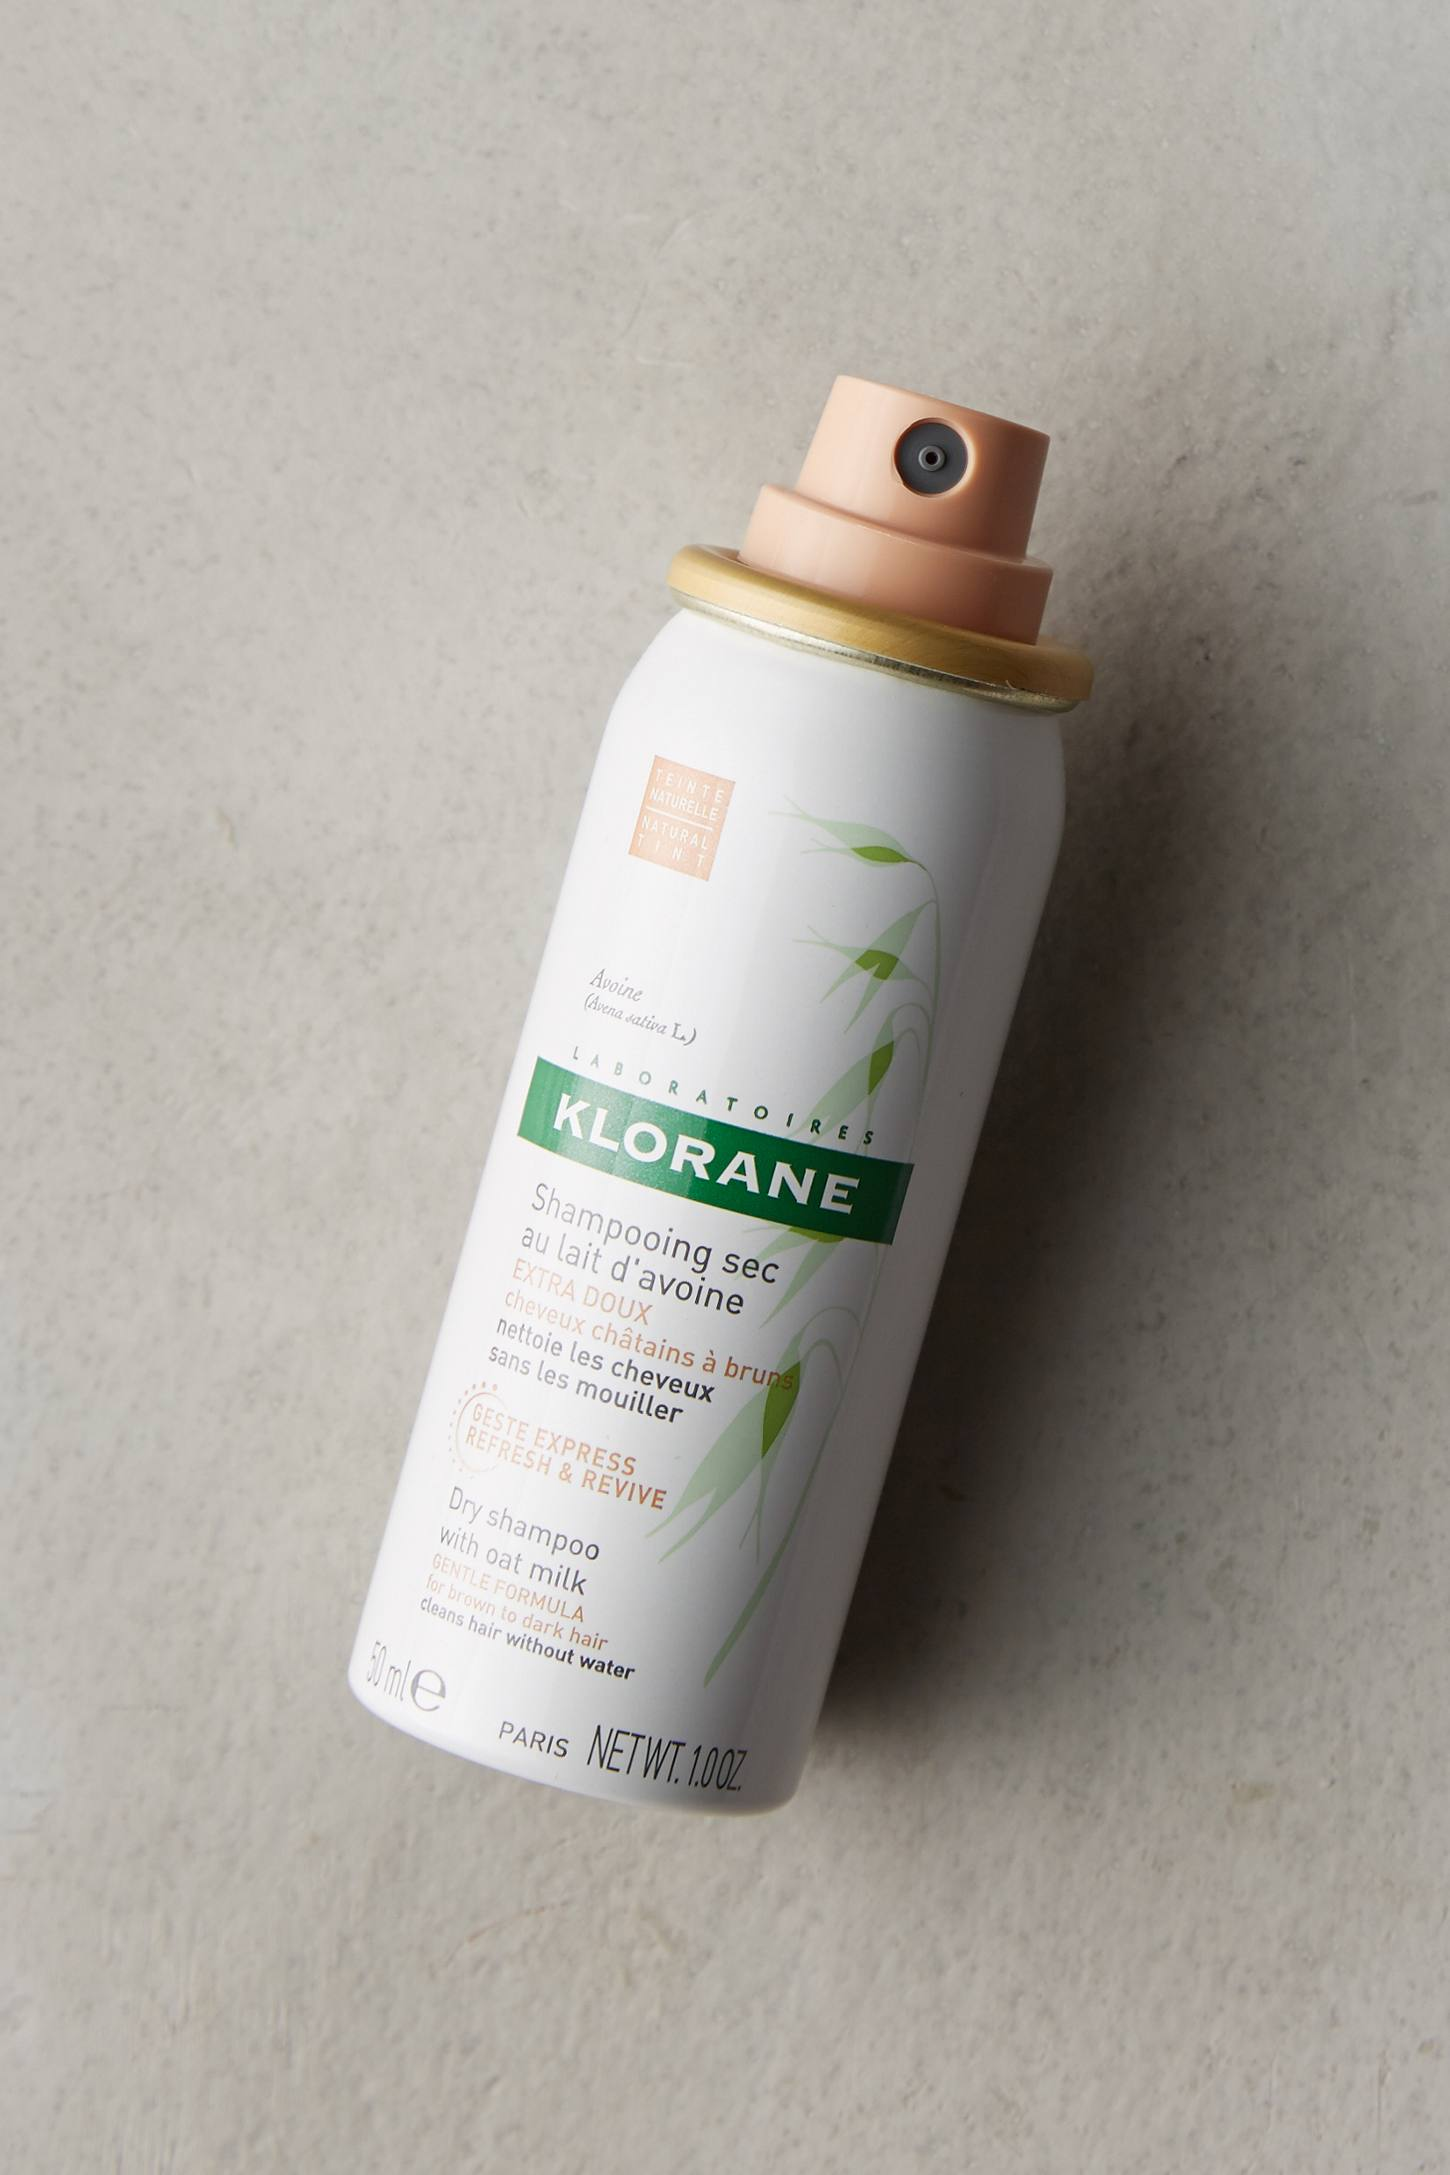 Slide View: 1: Klorane Dry Shampoo With Oat Milk, Natural Tint